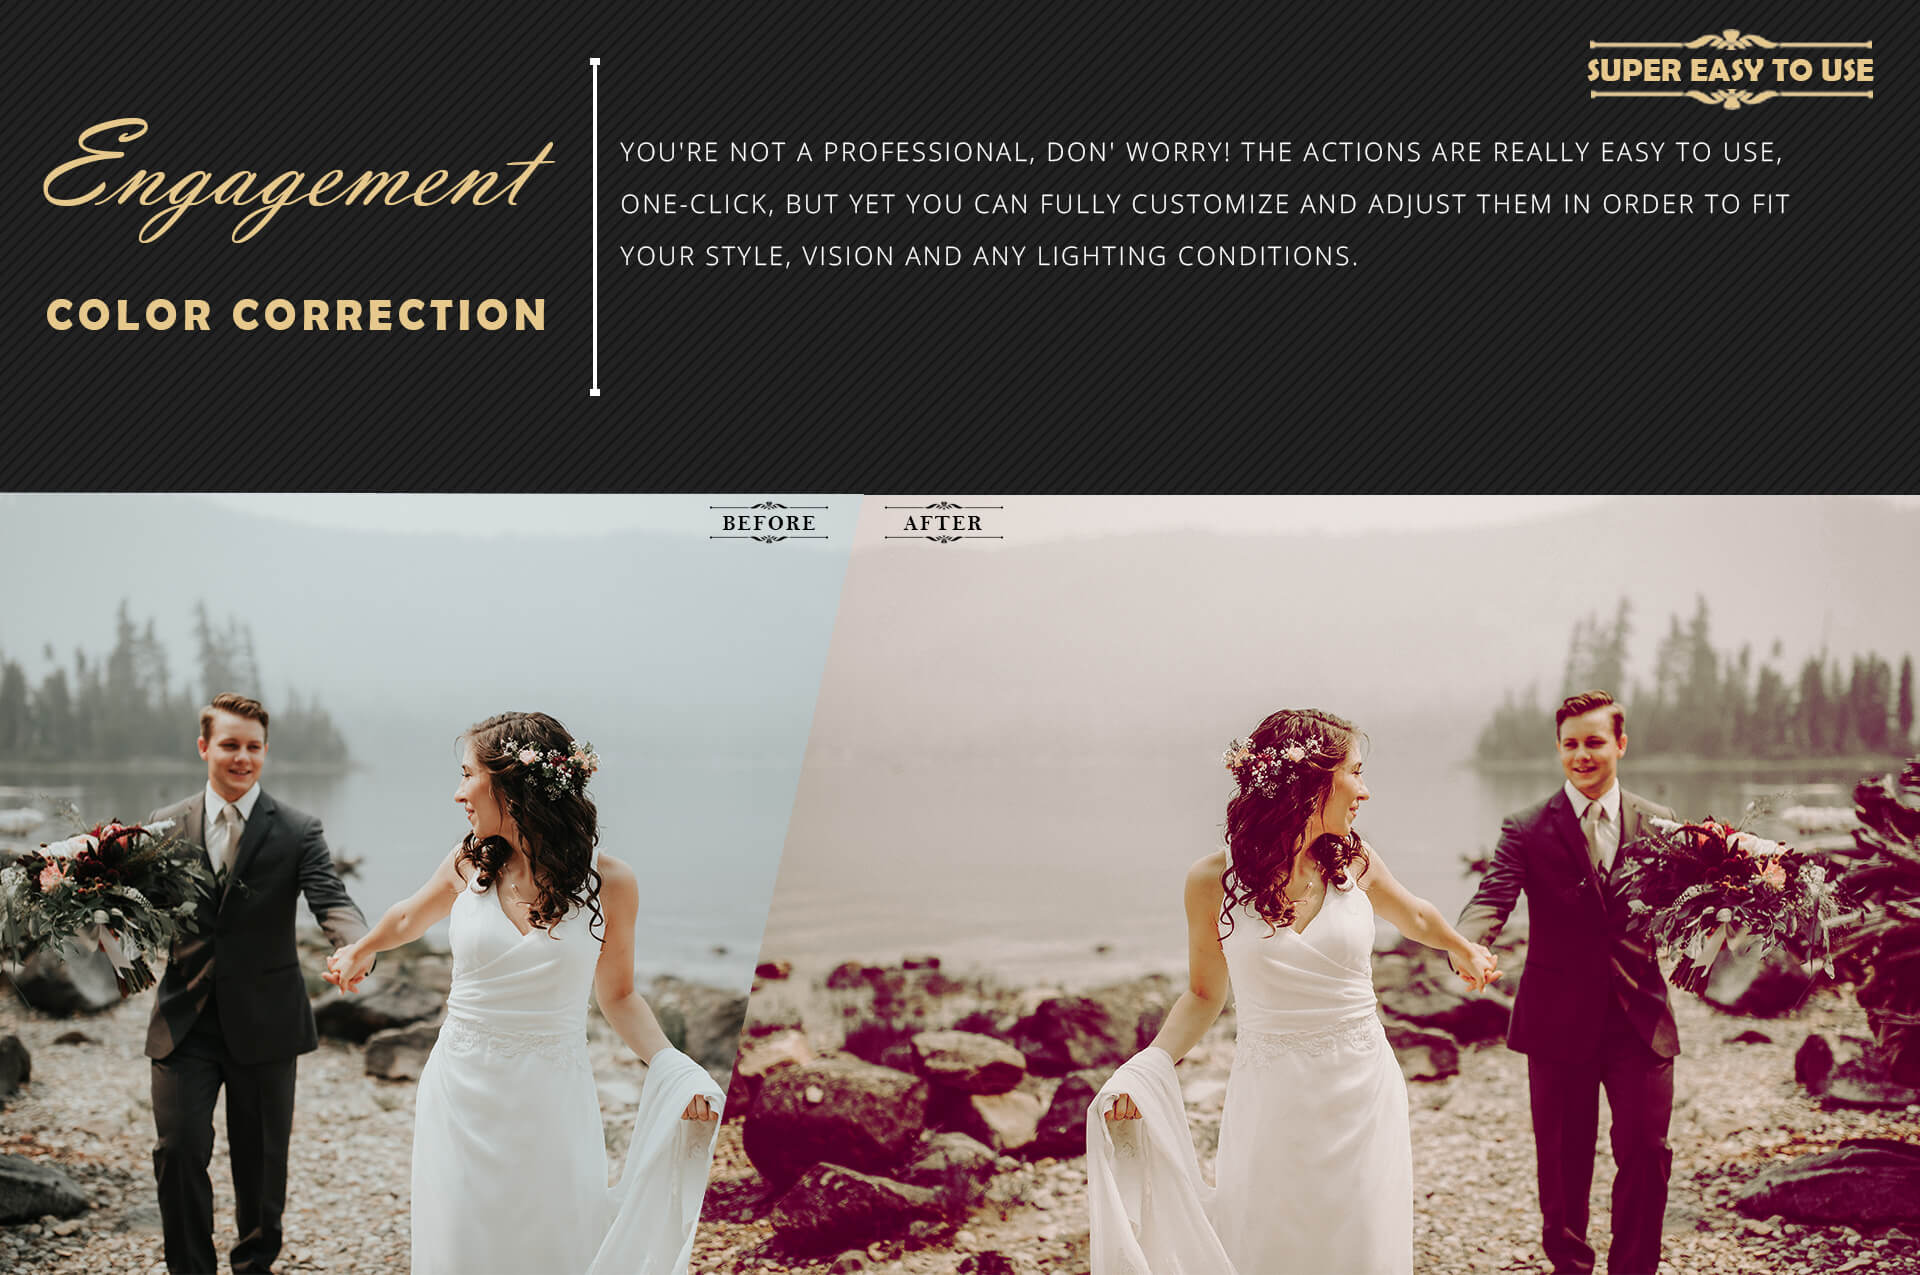 Engagement Color Grading Photoshop actions Filter example image 5